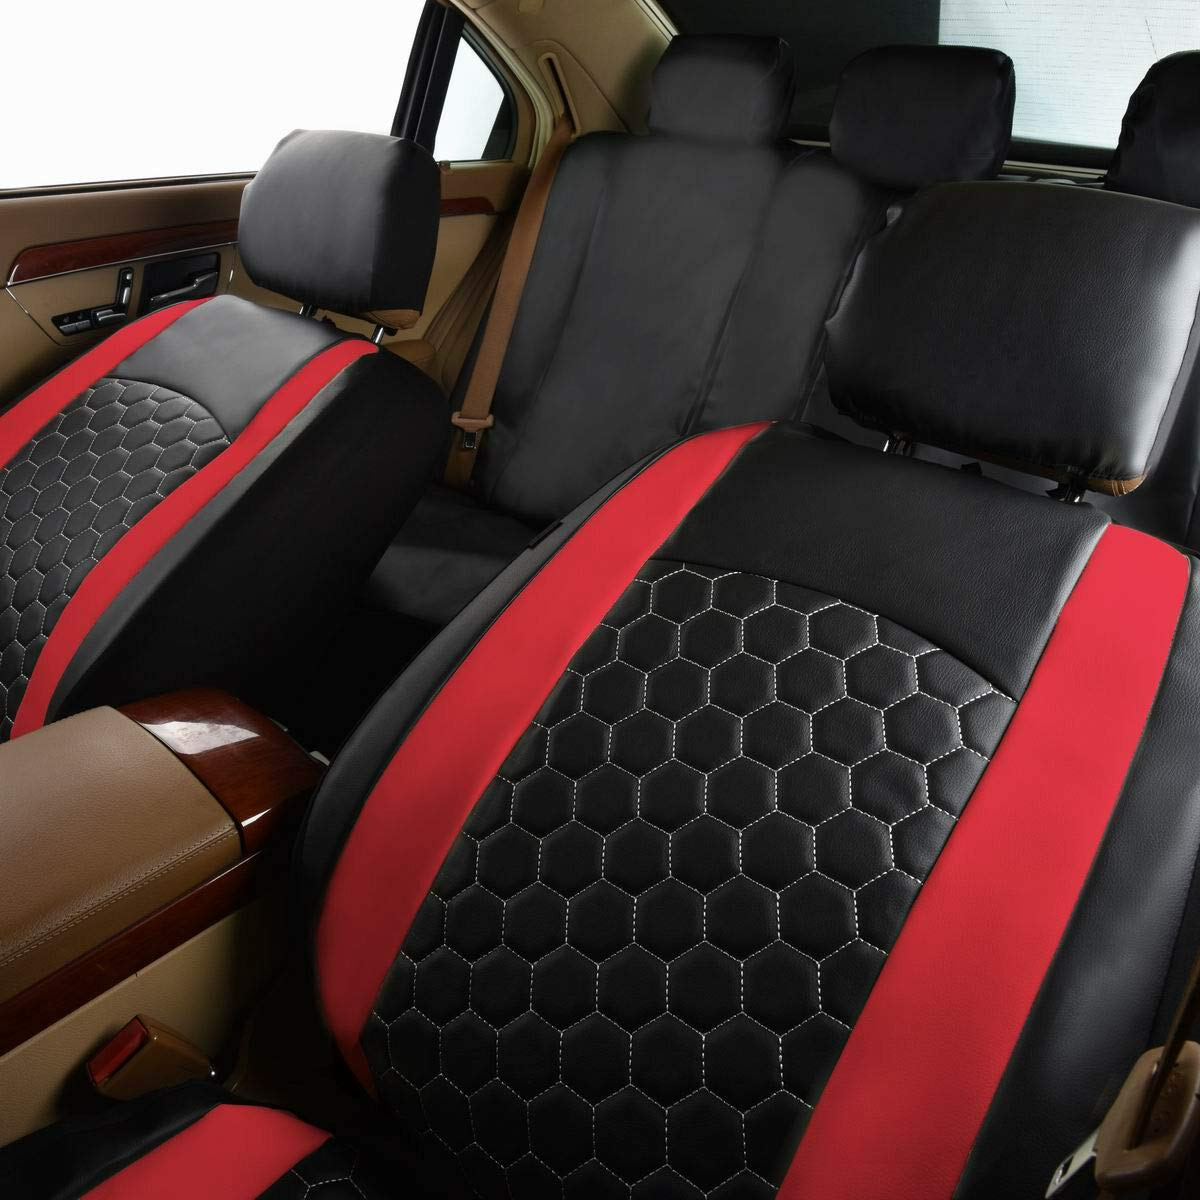 Flying Banner Creamy 2 Front Lichee Pattern Pu Leather Sporty Universal Car Seat Covers with Football pattern Embroidery Design